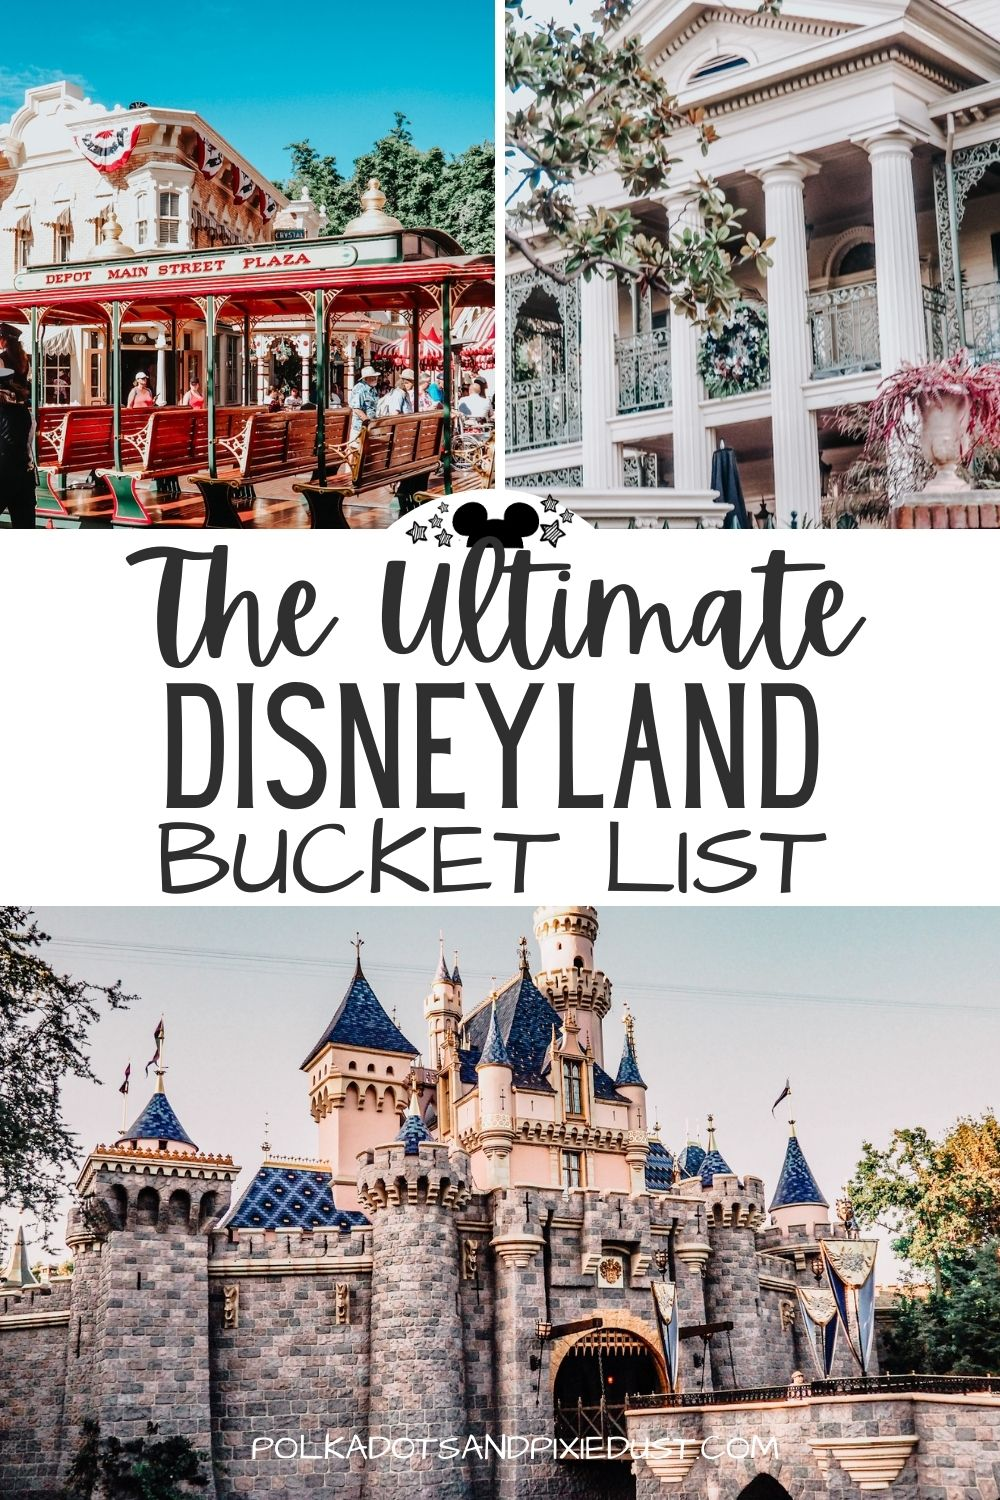 Head to Disneyland and California with this Bucket List in hand to make sure you ride all the rides, eat the best foods, and experience EVERYTHING these Disney Parks have to offer. #polkadotpixies #disneyland #californiaacventure